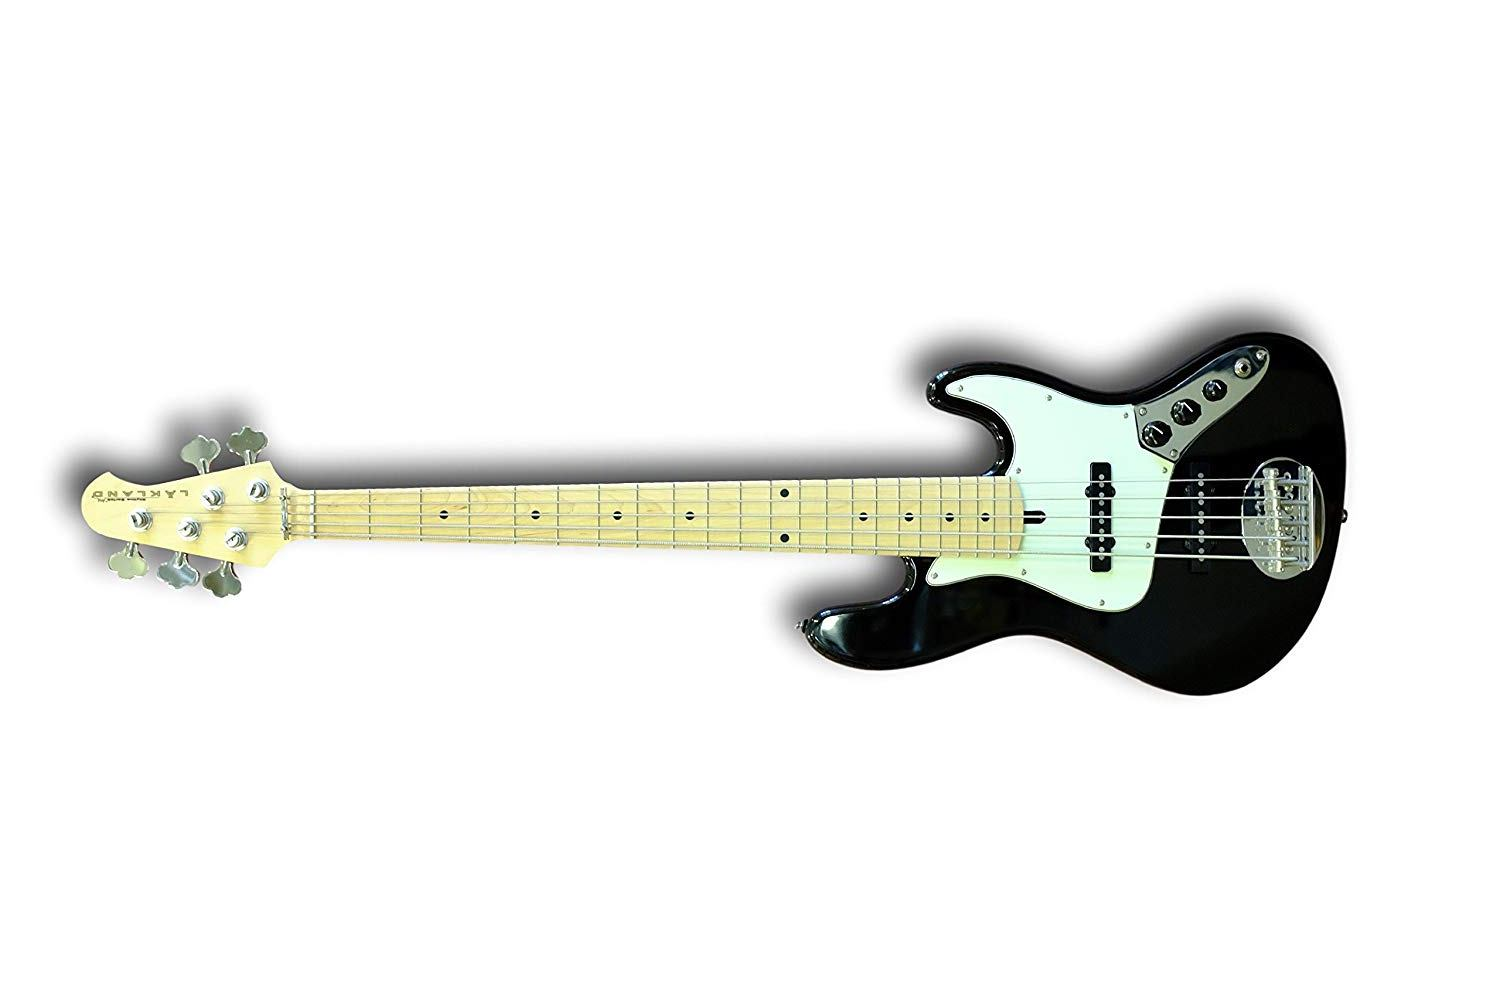 Lakland L5560MBK Skyline 55-60 Vintage J-Style 5-String Bass Guitar Review